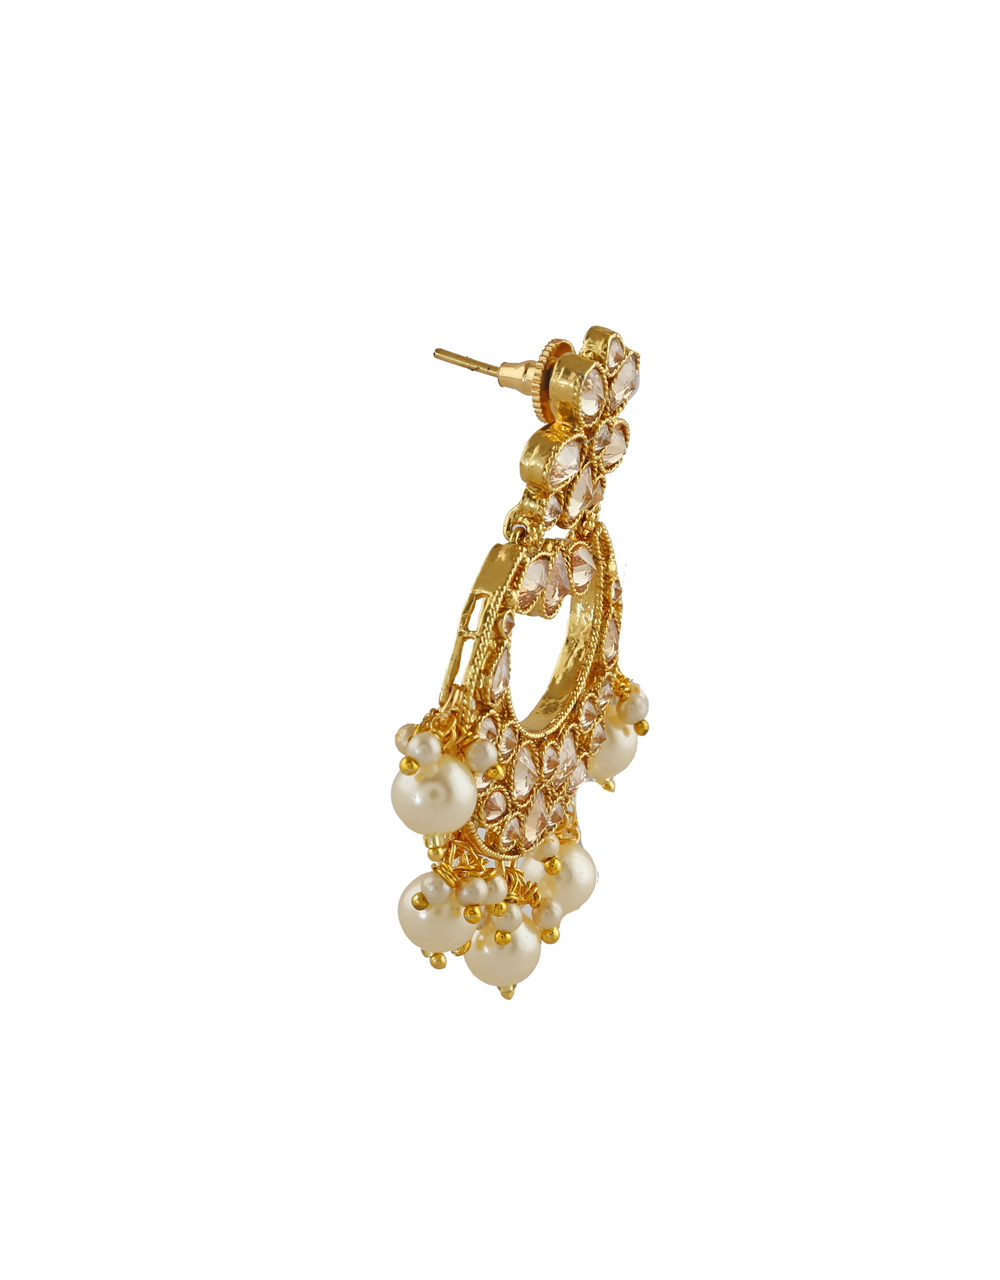 Floral Design Studded With American Diamond Necklace For Women